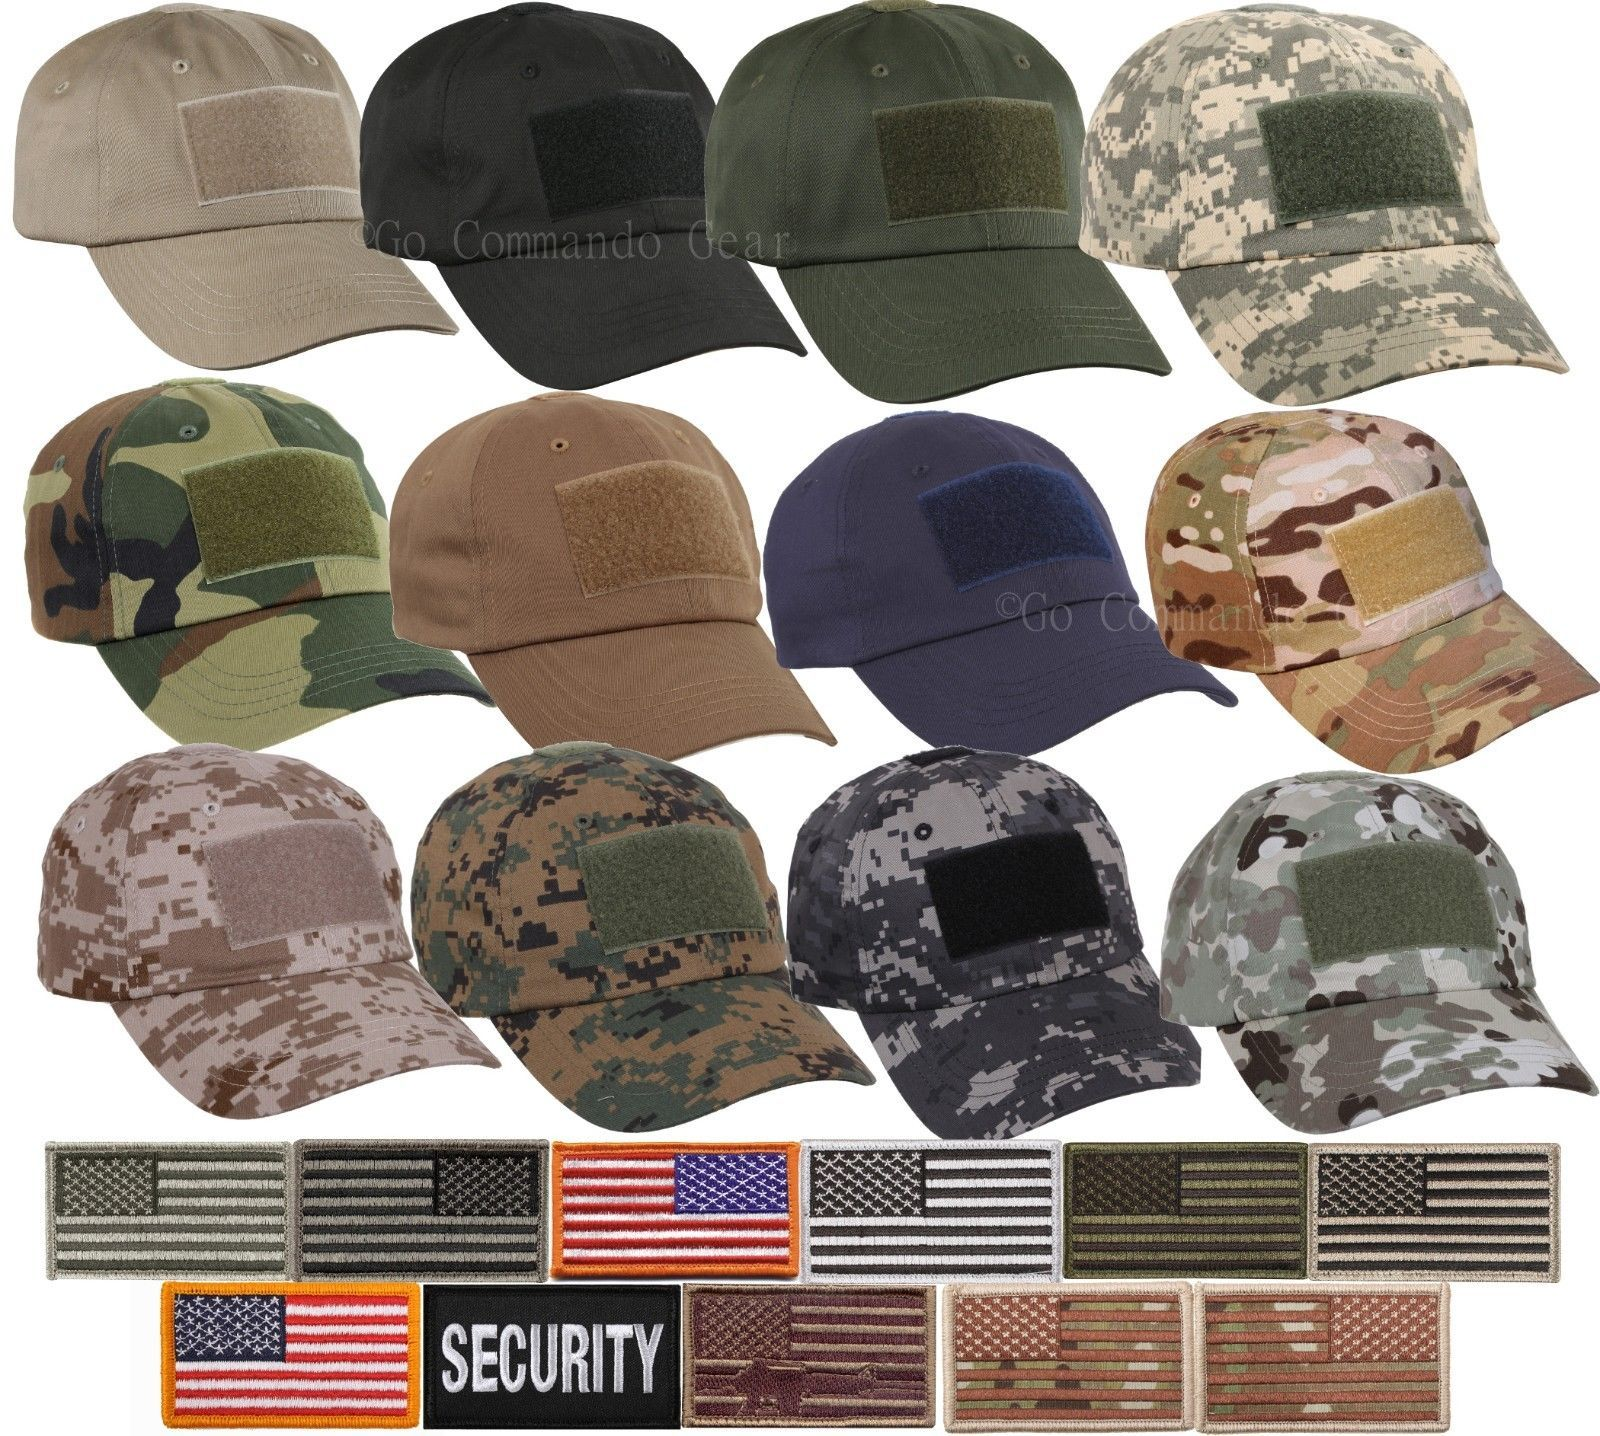 Special Forces Operator Tactical Cap Hat W Patch Ebay In 2021 Operators Tactical Camo Hats Special Forces Operator